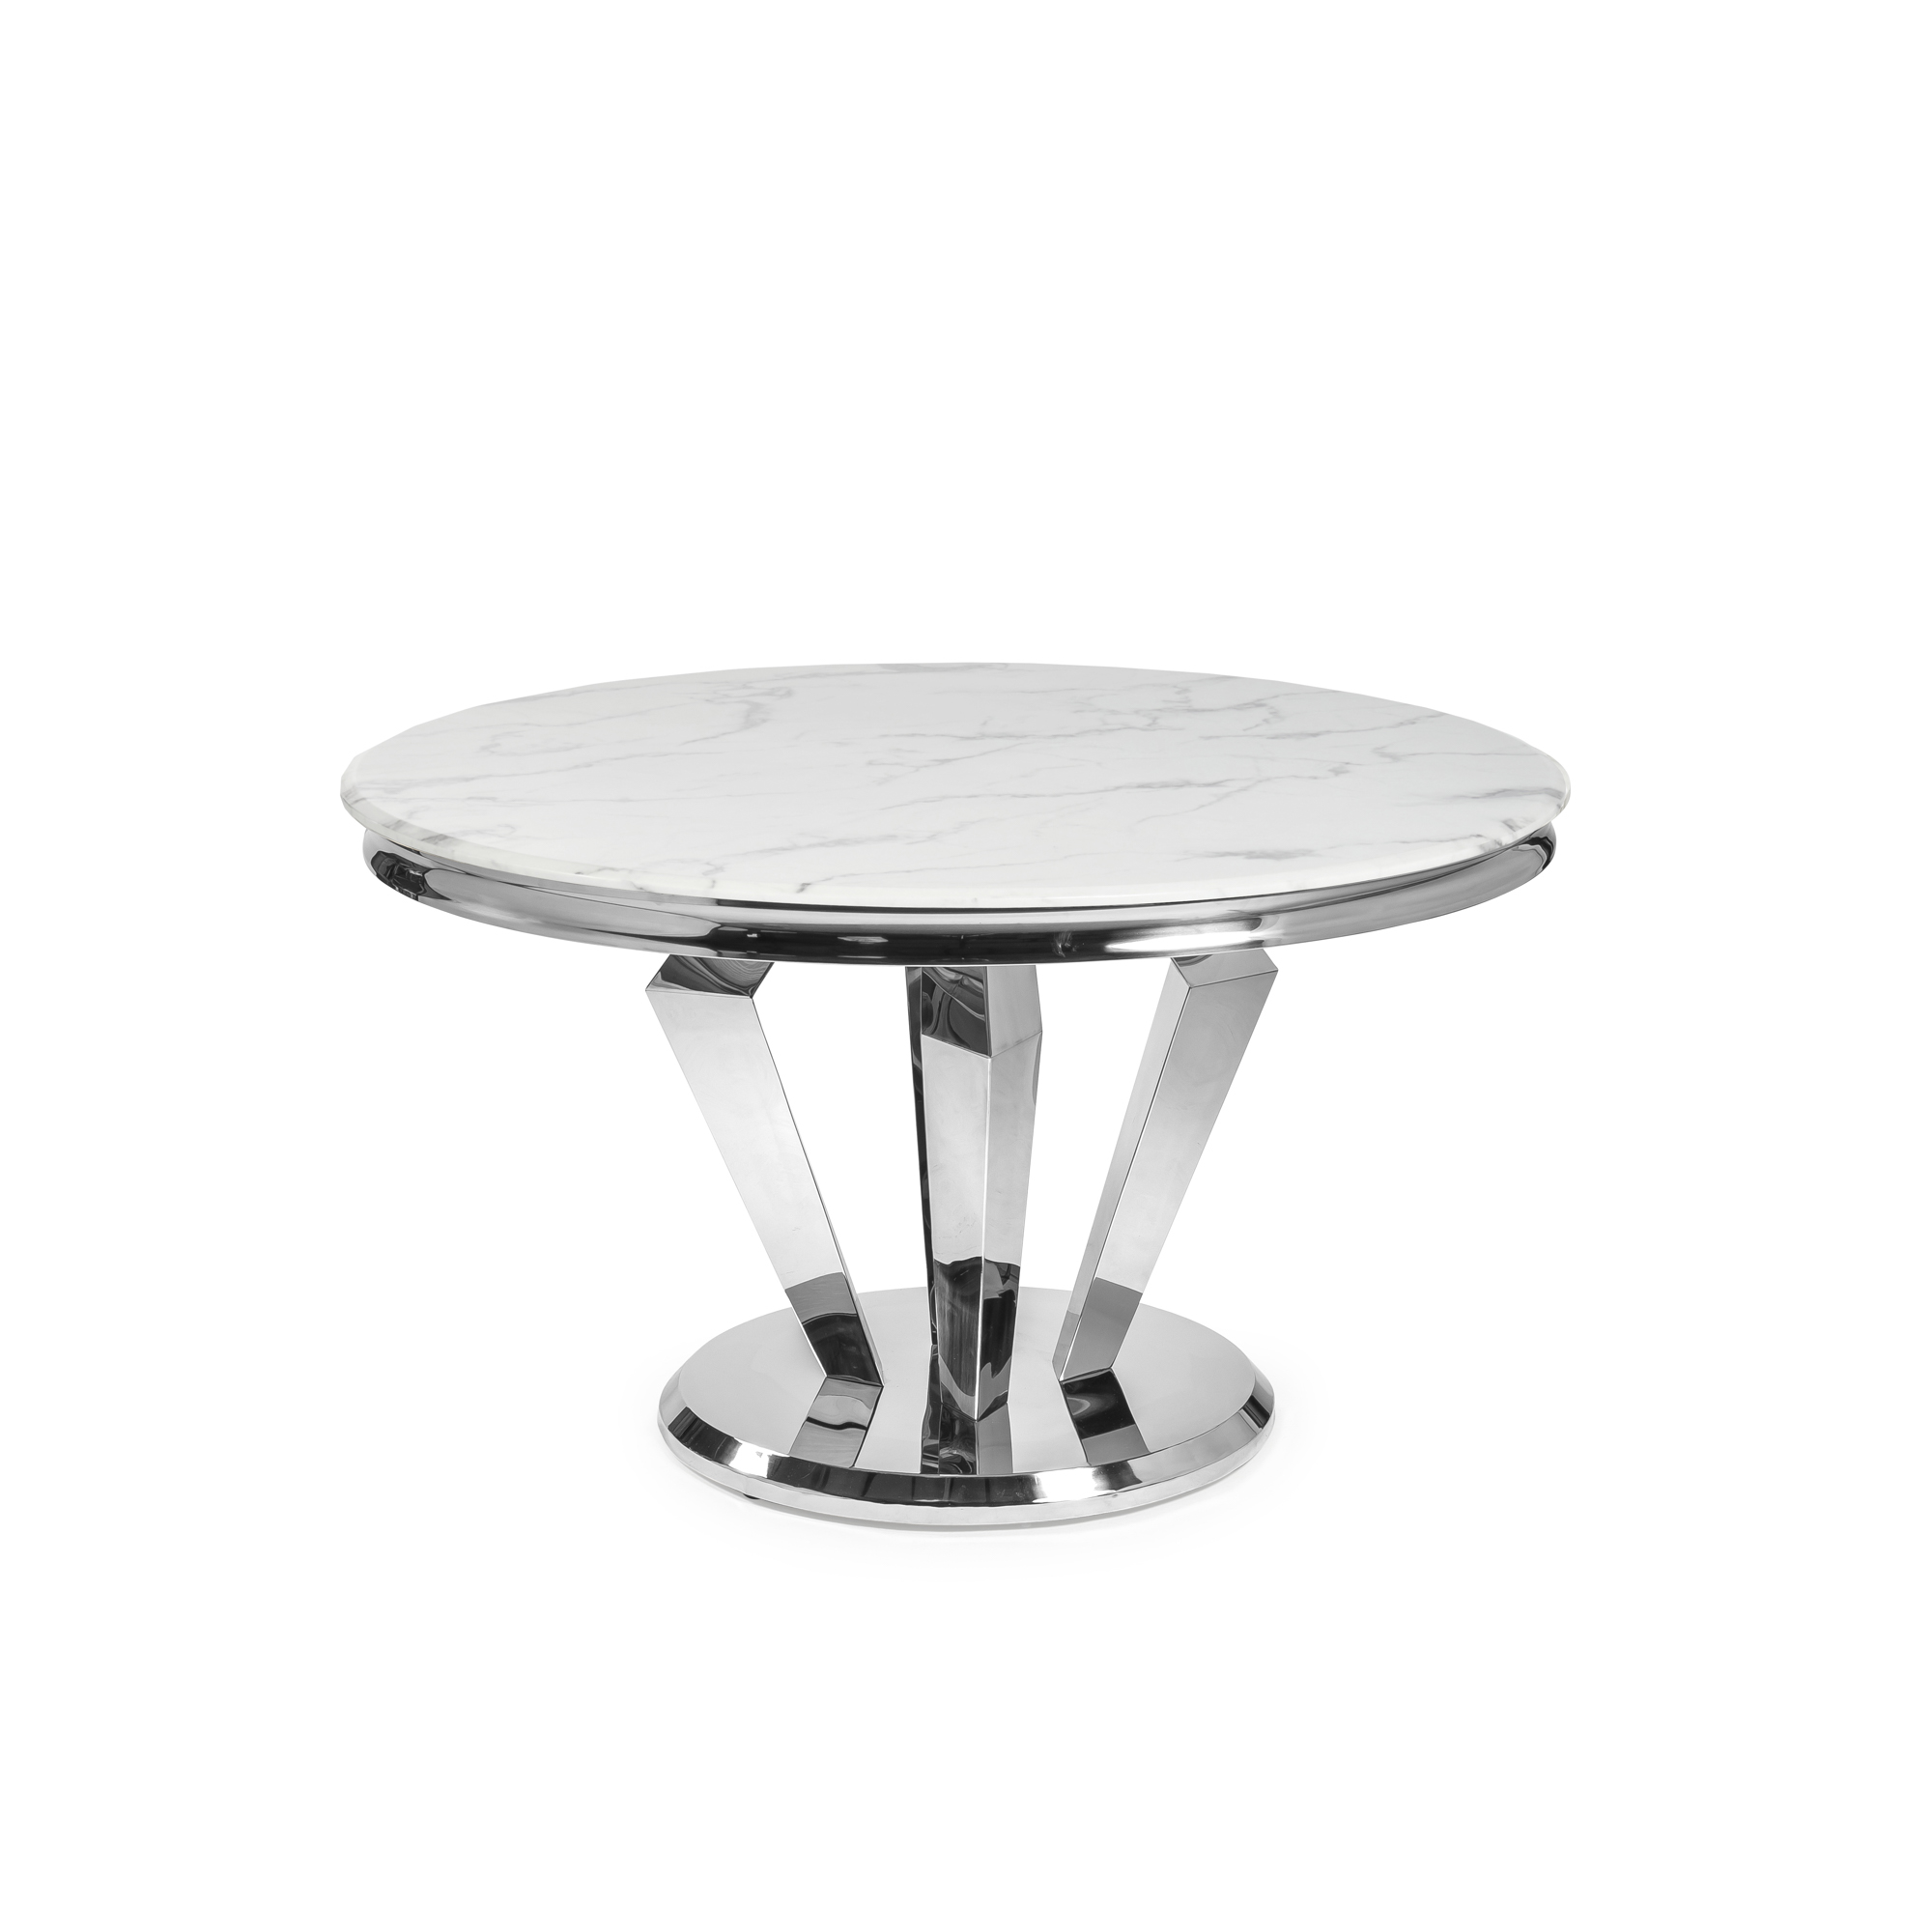 1.3M Polished Circular Modern Stainless Steel Dining Table with White Marble Top